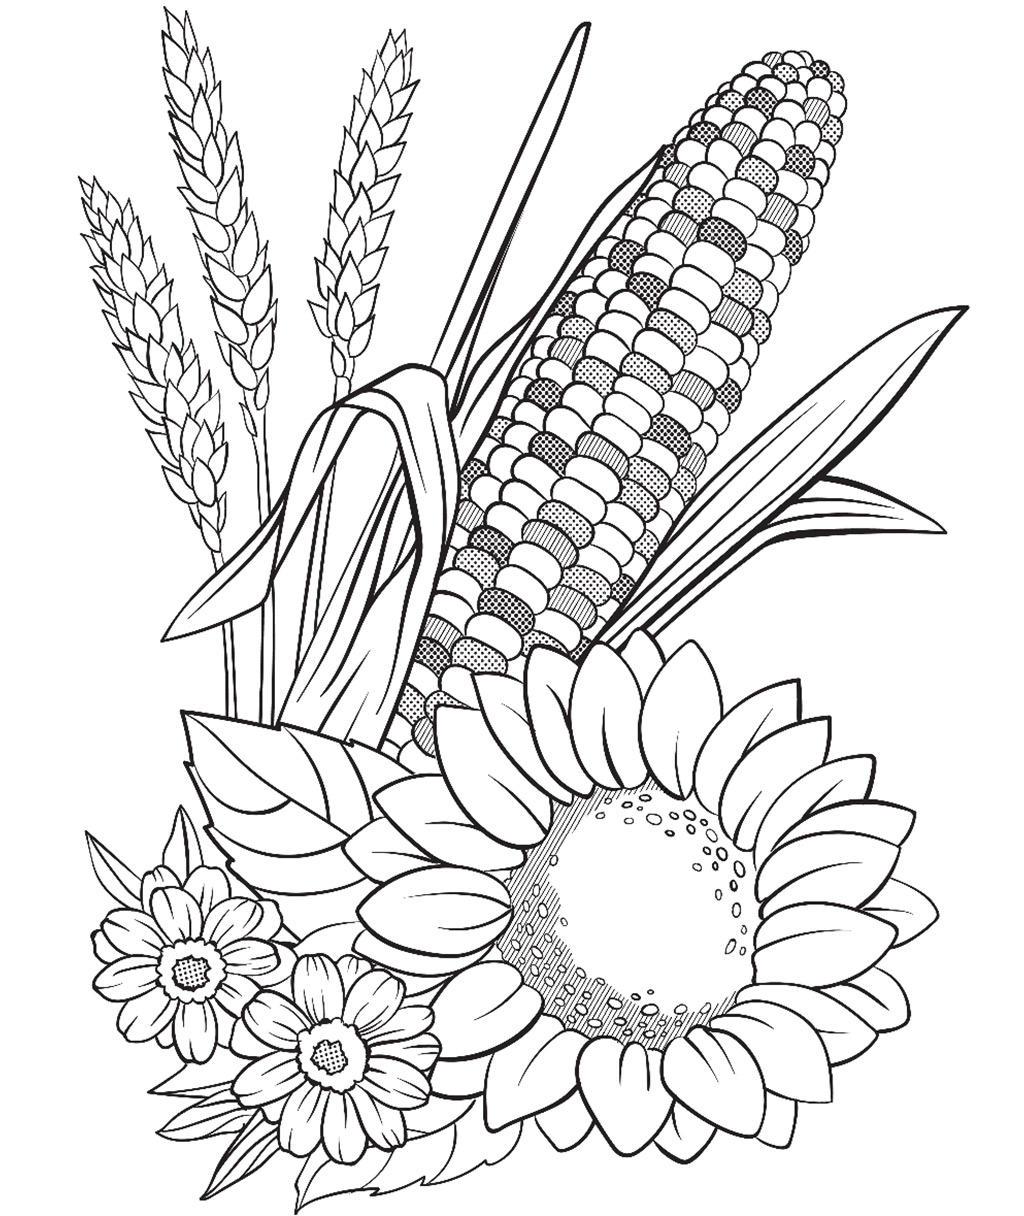 Plants Trees Flowers Free Coloring Pages Crayola Com